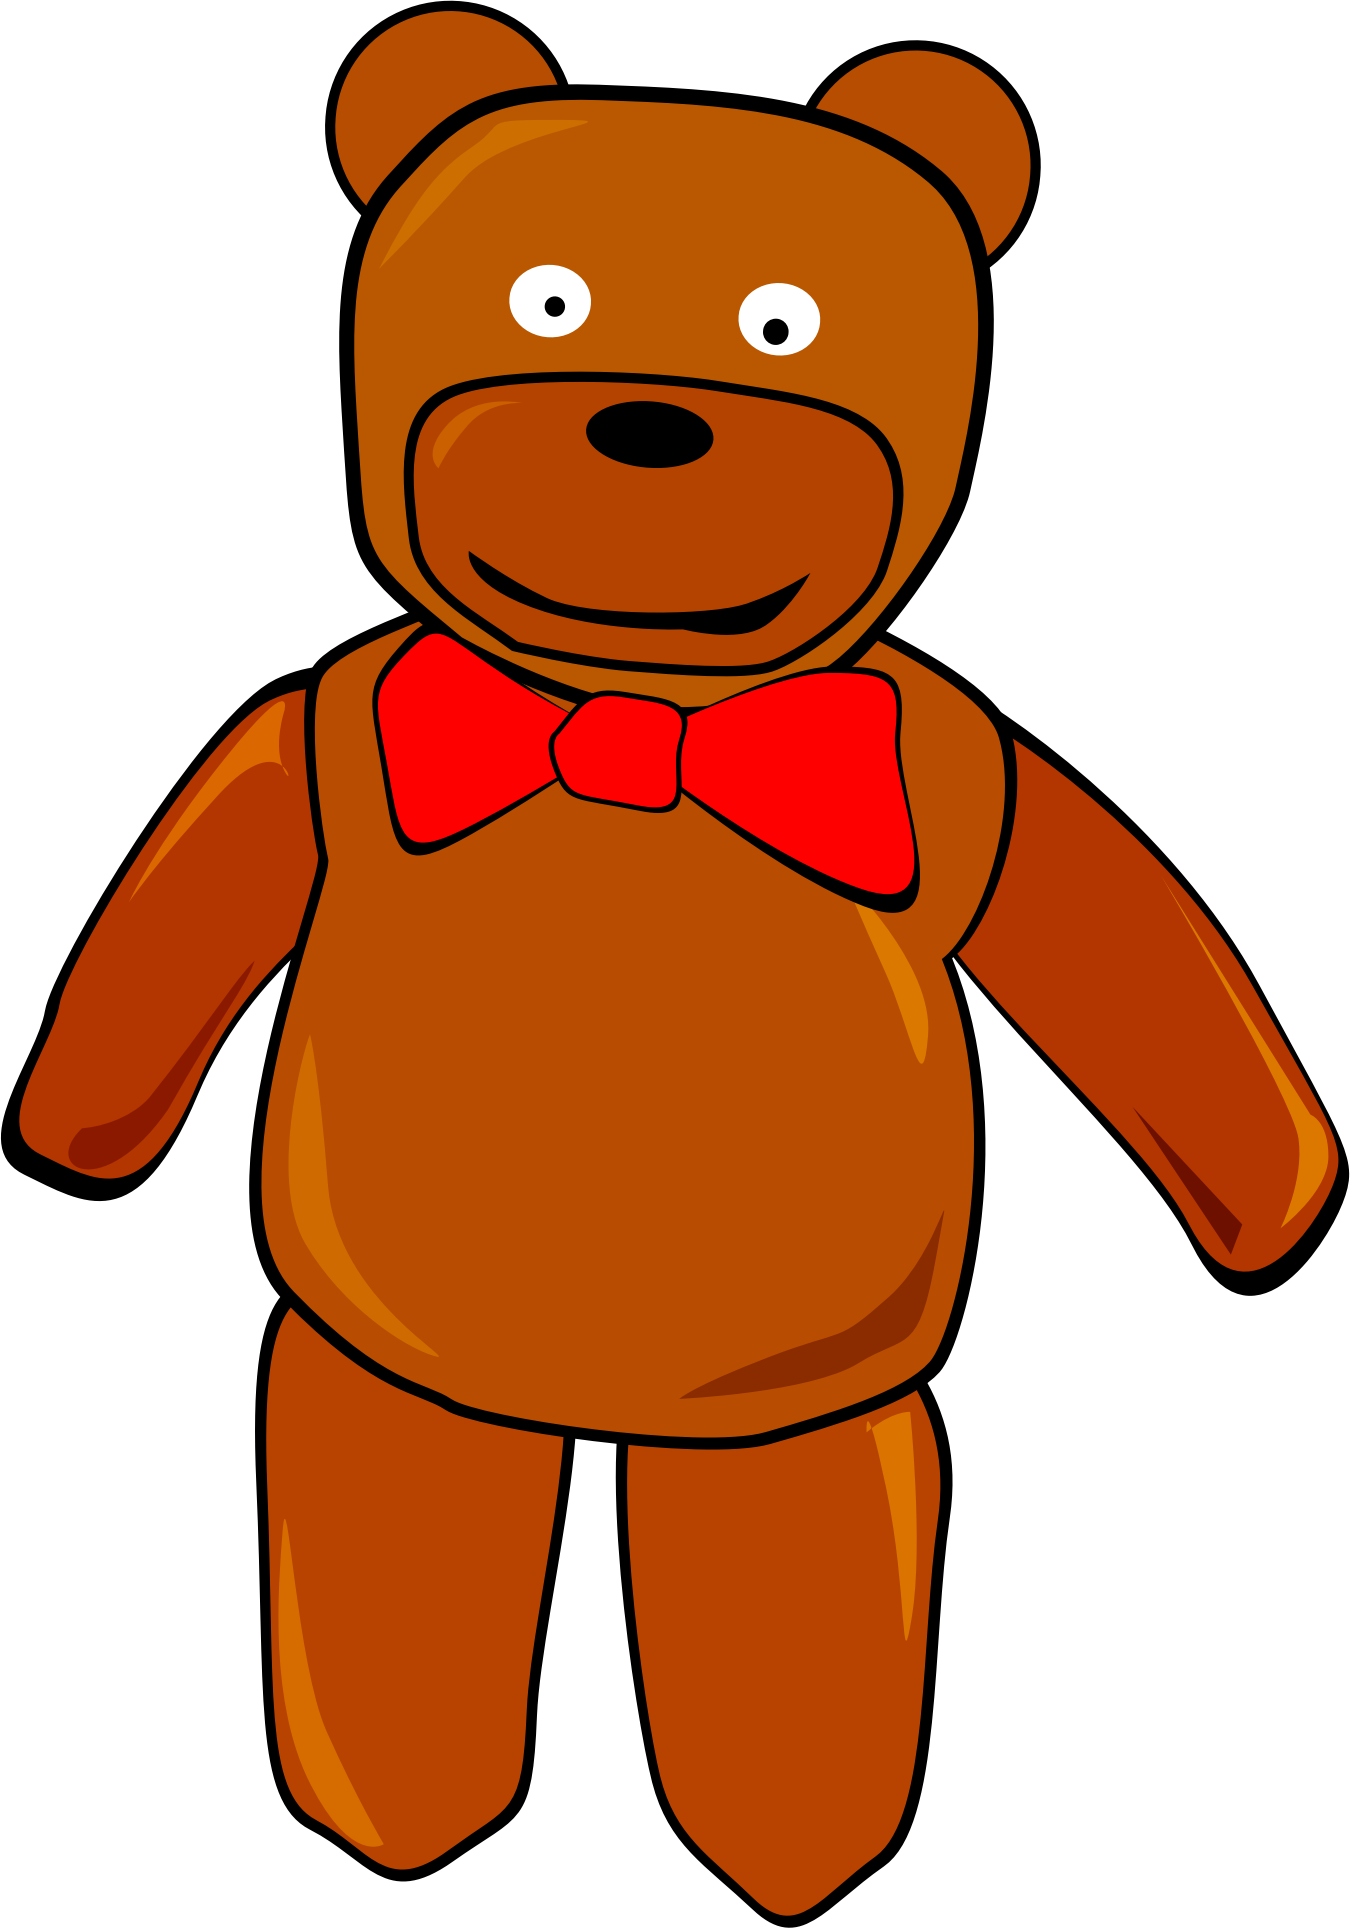 Teddybear by Jarno